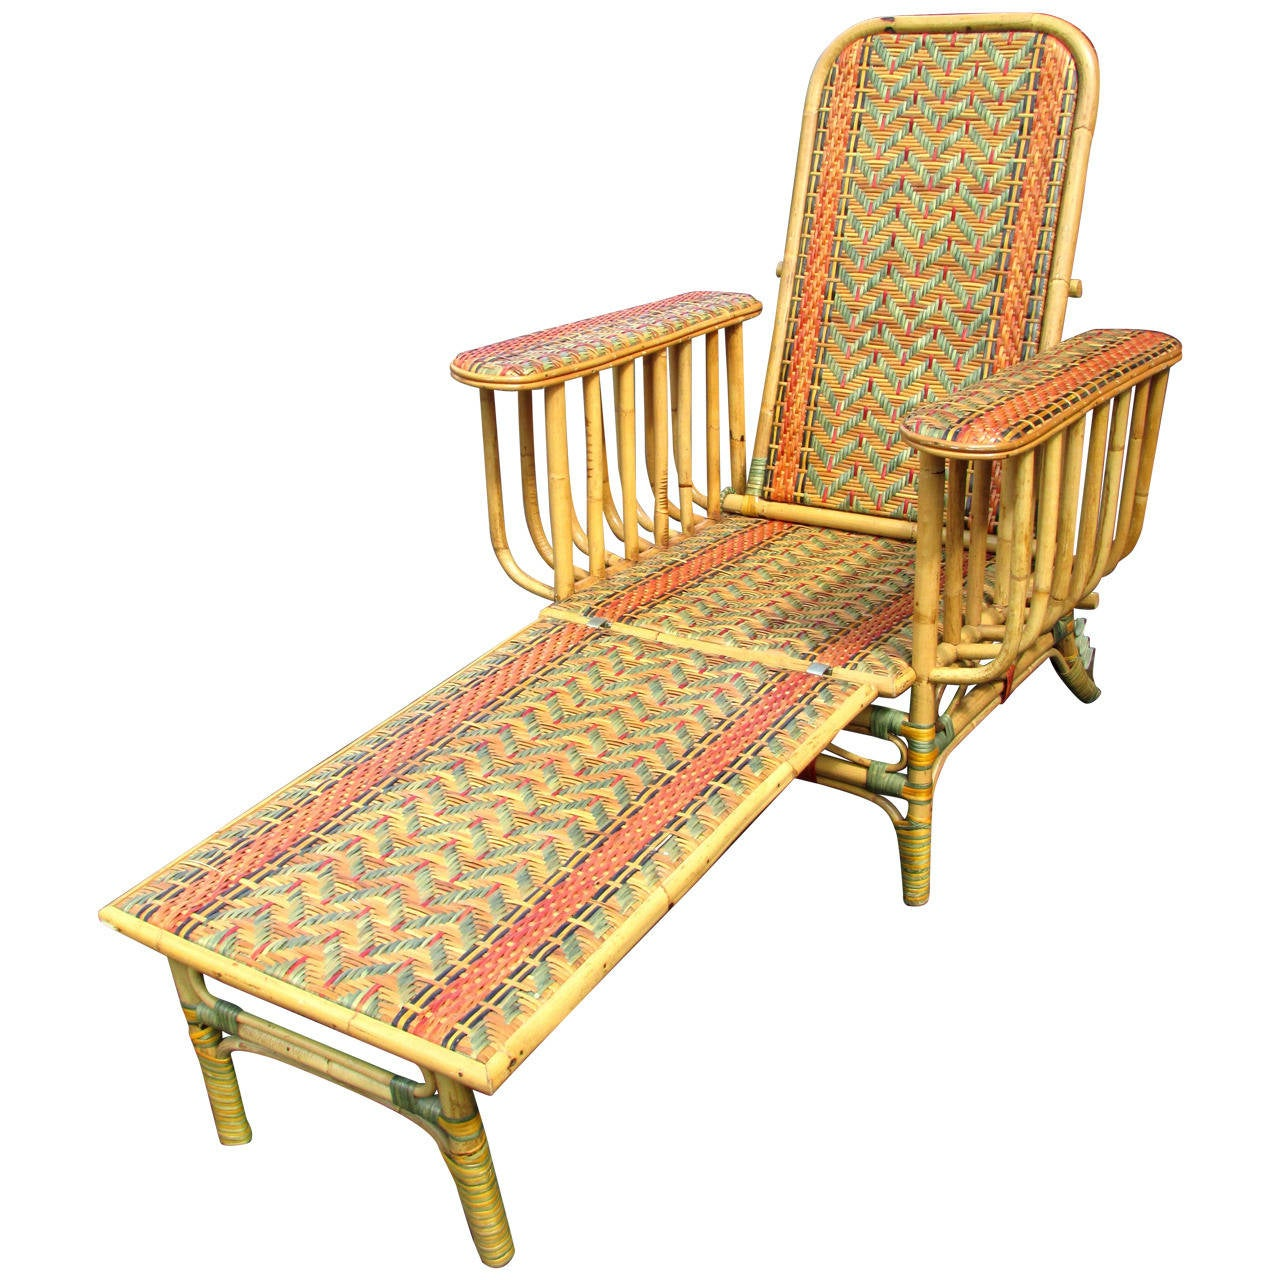 Art Deco Style Wicker Deck Lounge Chair at 1stdibs